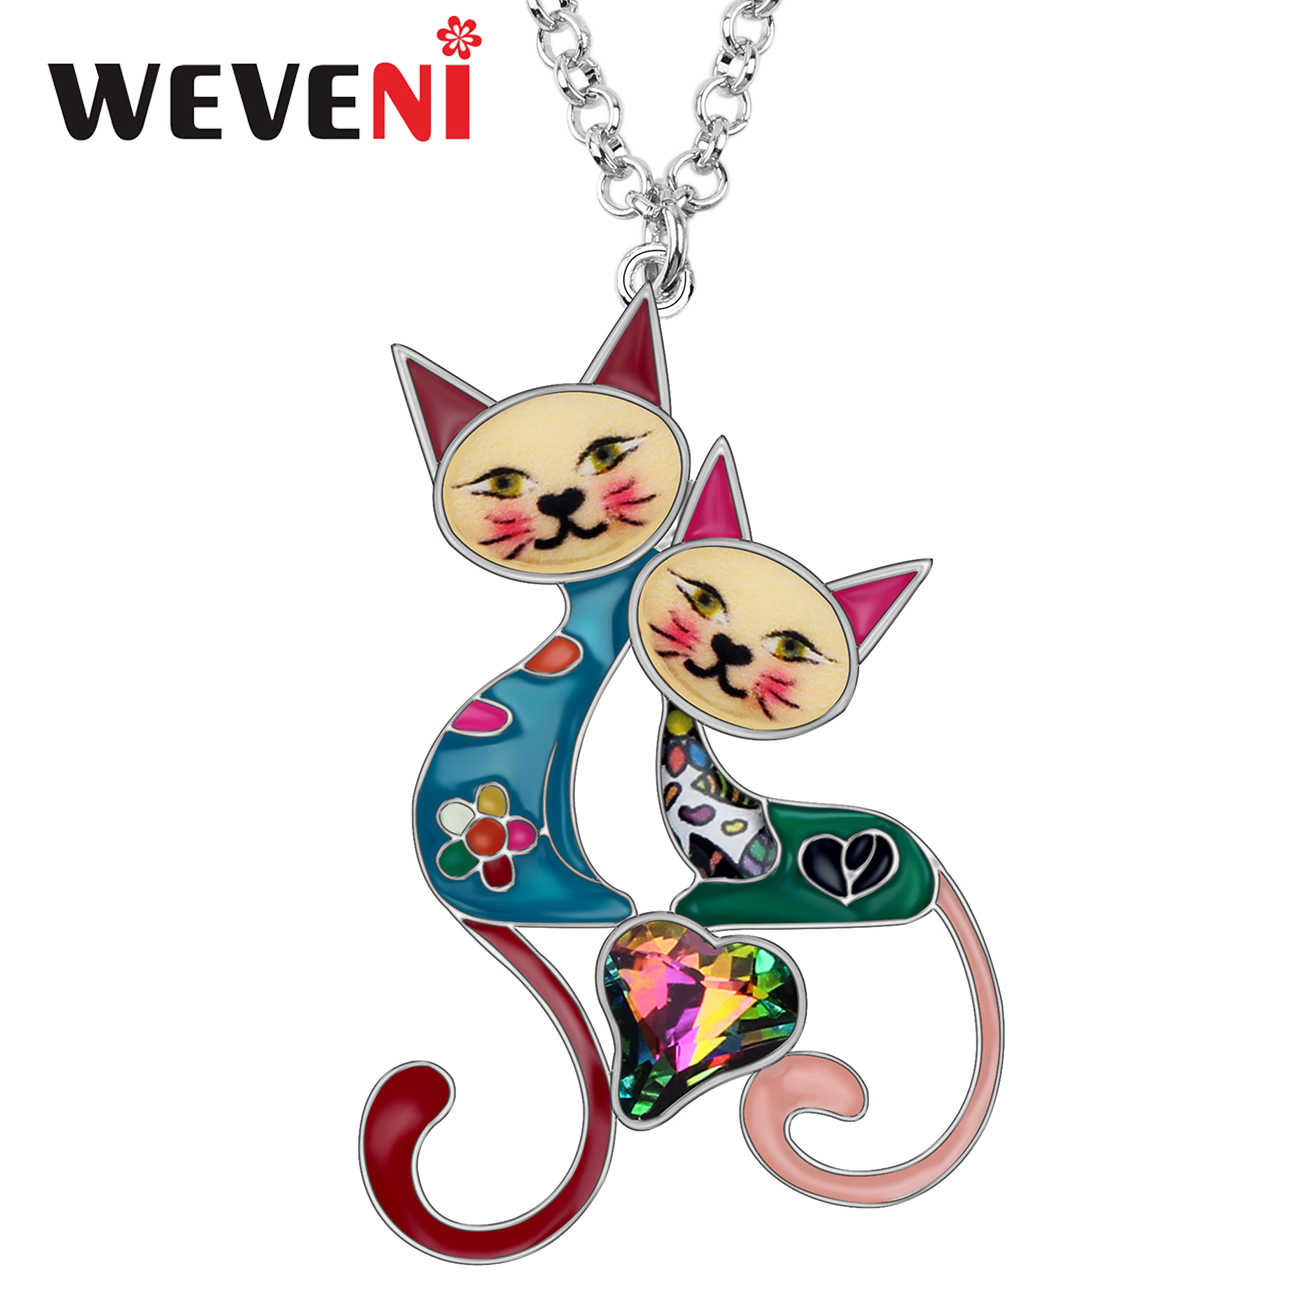 WEVENI Enamel Alloy Rhinestone Crystal Cat Necklace Pendant Cute Pets Jewelry For Women Girls Best Friends Gift Accessories 2019